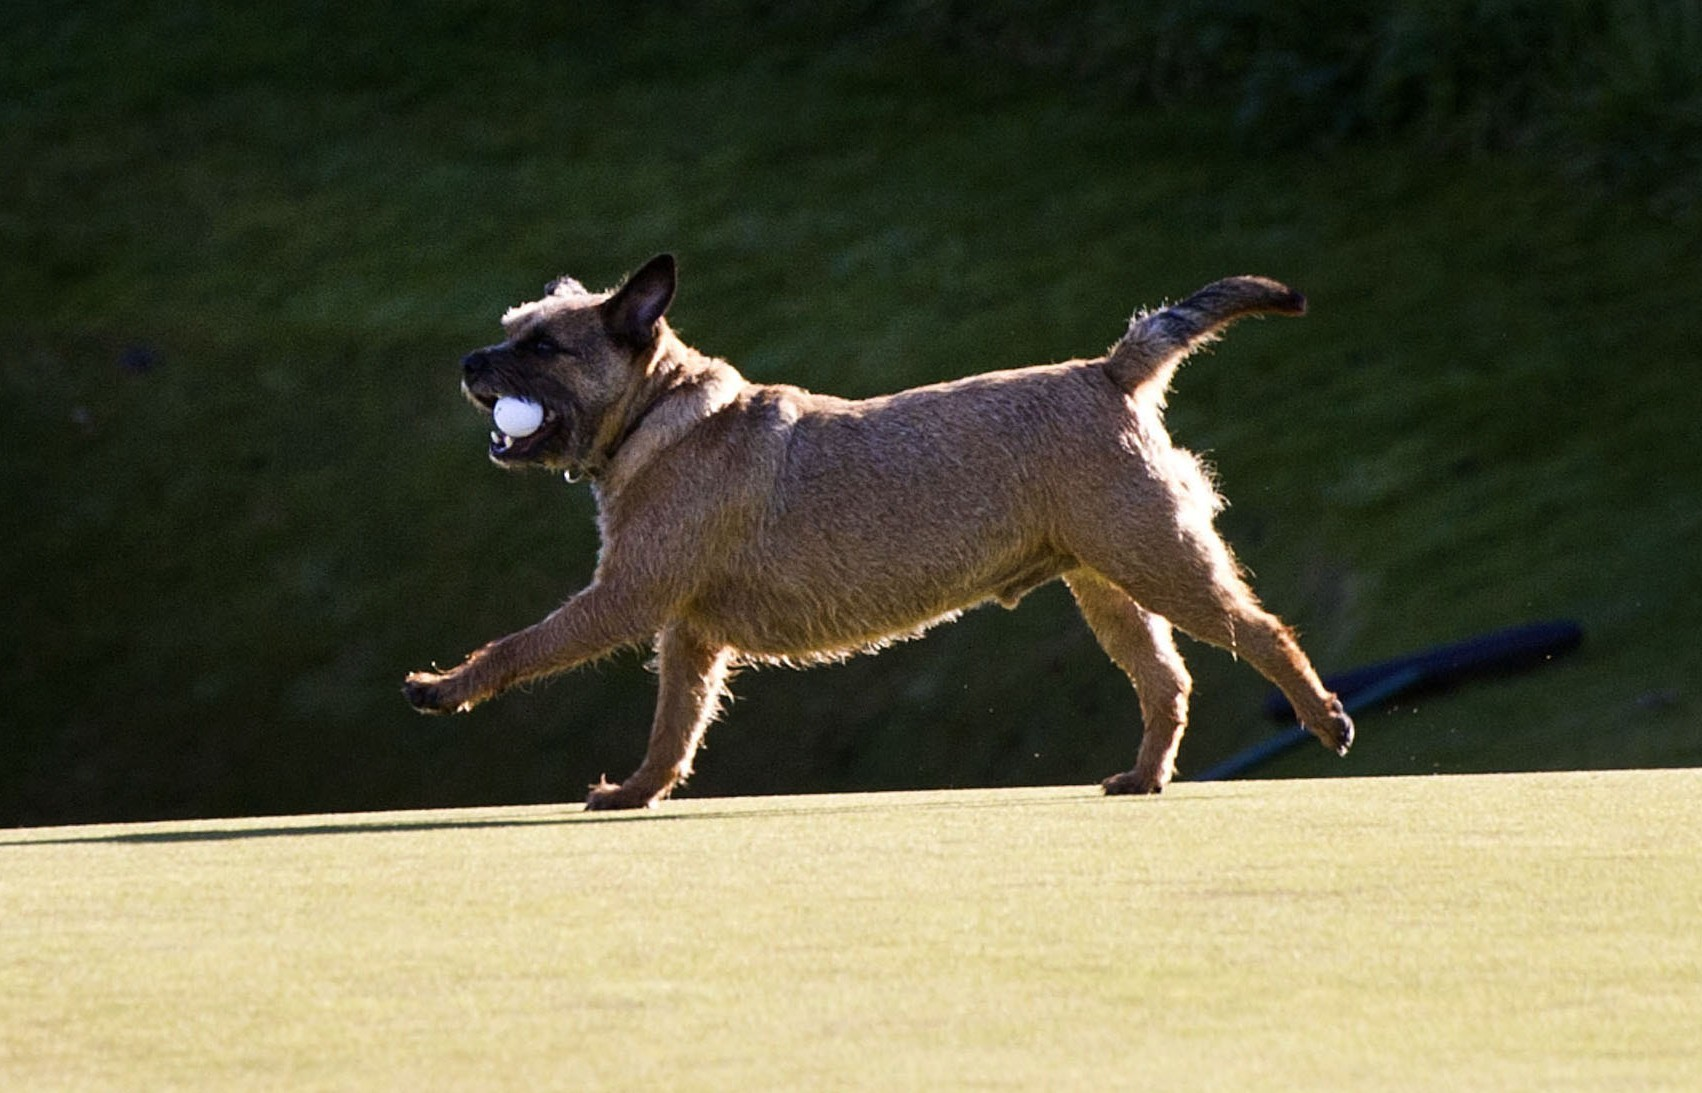 Those who attempt to mix golf and dogs on council-owned courses in Dundee are facing a new ban.